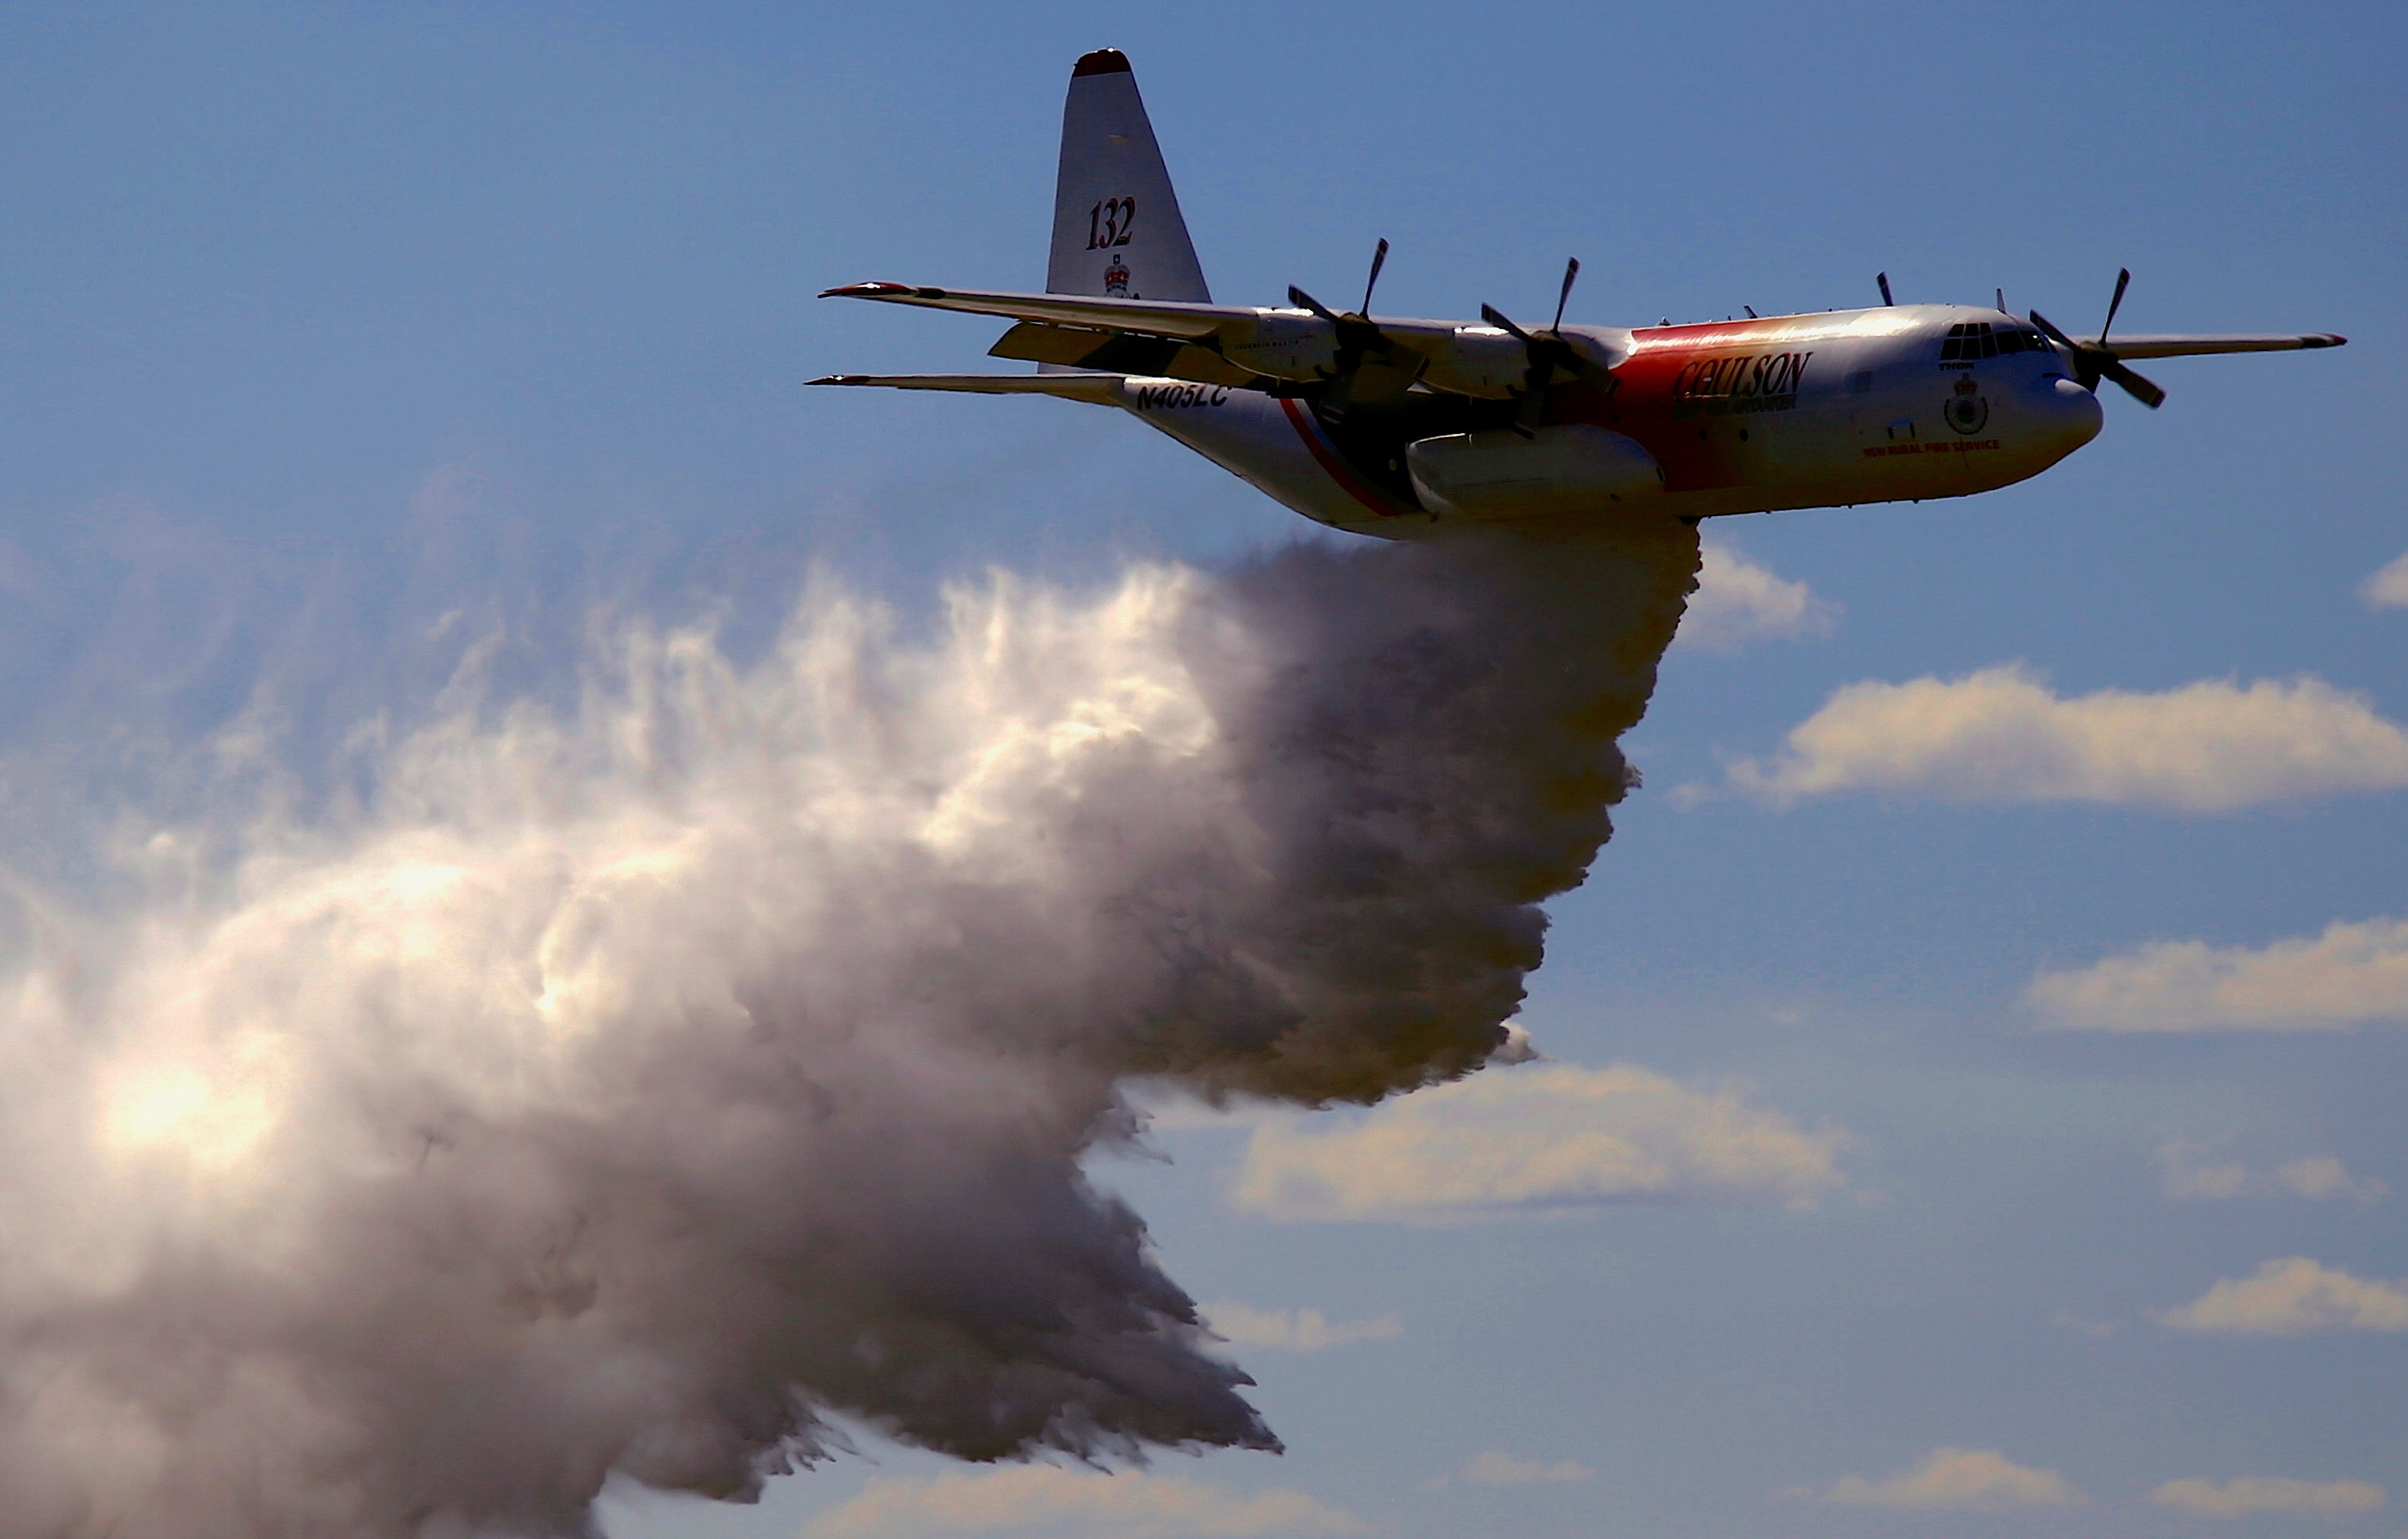 The C-130 Hercules can carry 15,000 litres of water or fire retardant, which can be released in...